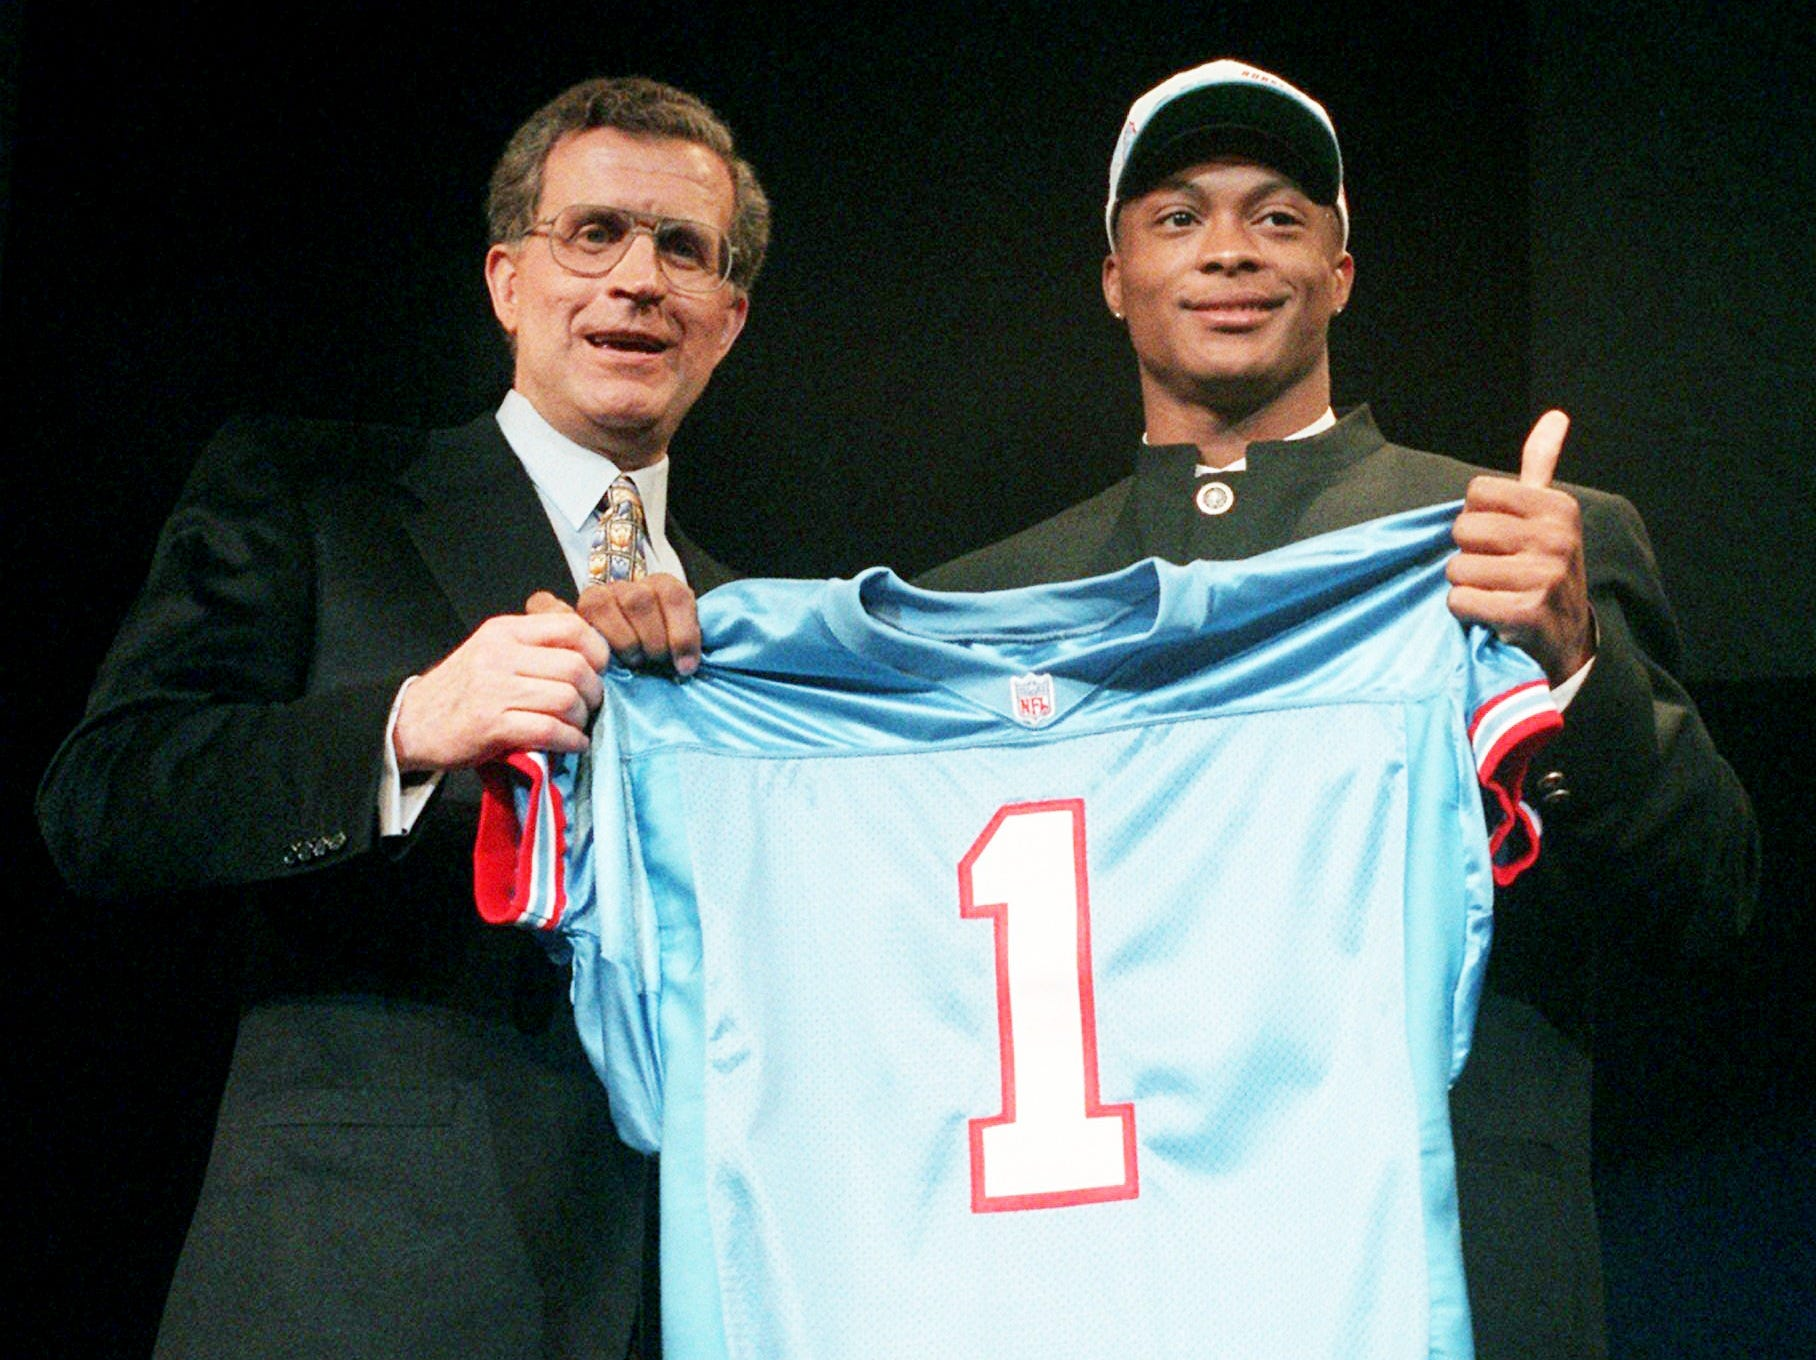 Heisman Trophy-winning running back Eddie George of Ohio State gives a thumbs up while NFL Commissioner Paul Tagliabue, left, helps hold a Houston Oilers football jersey after being taken by Houston as the first round pick in the NFL draft in New York April 20, 1996.